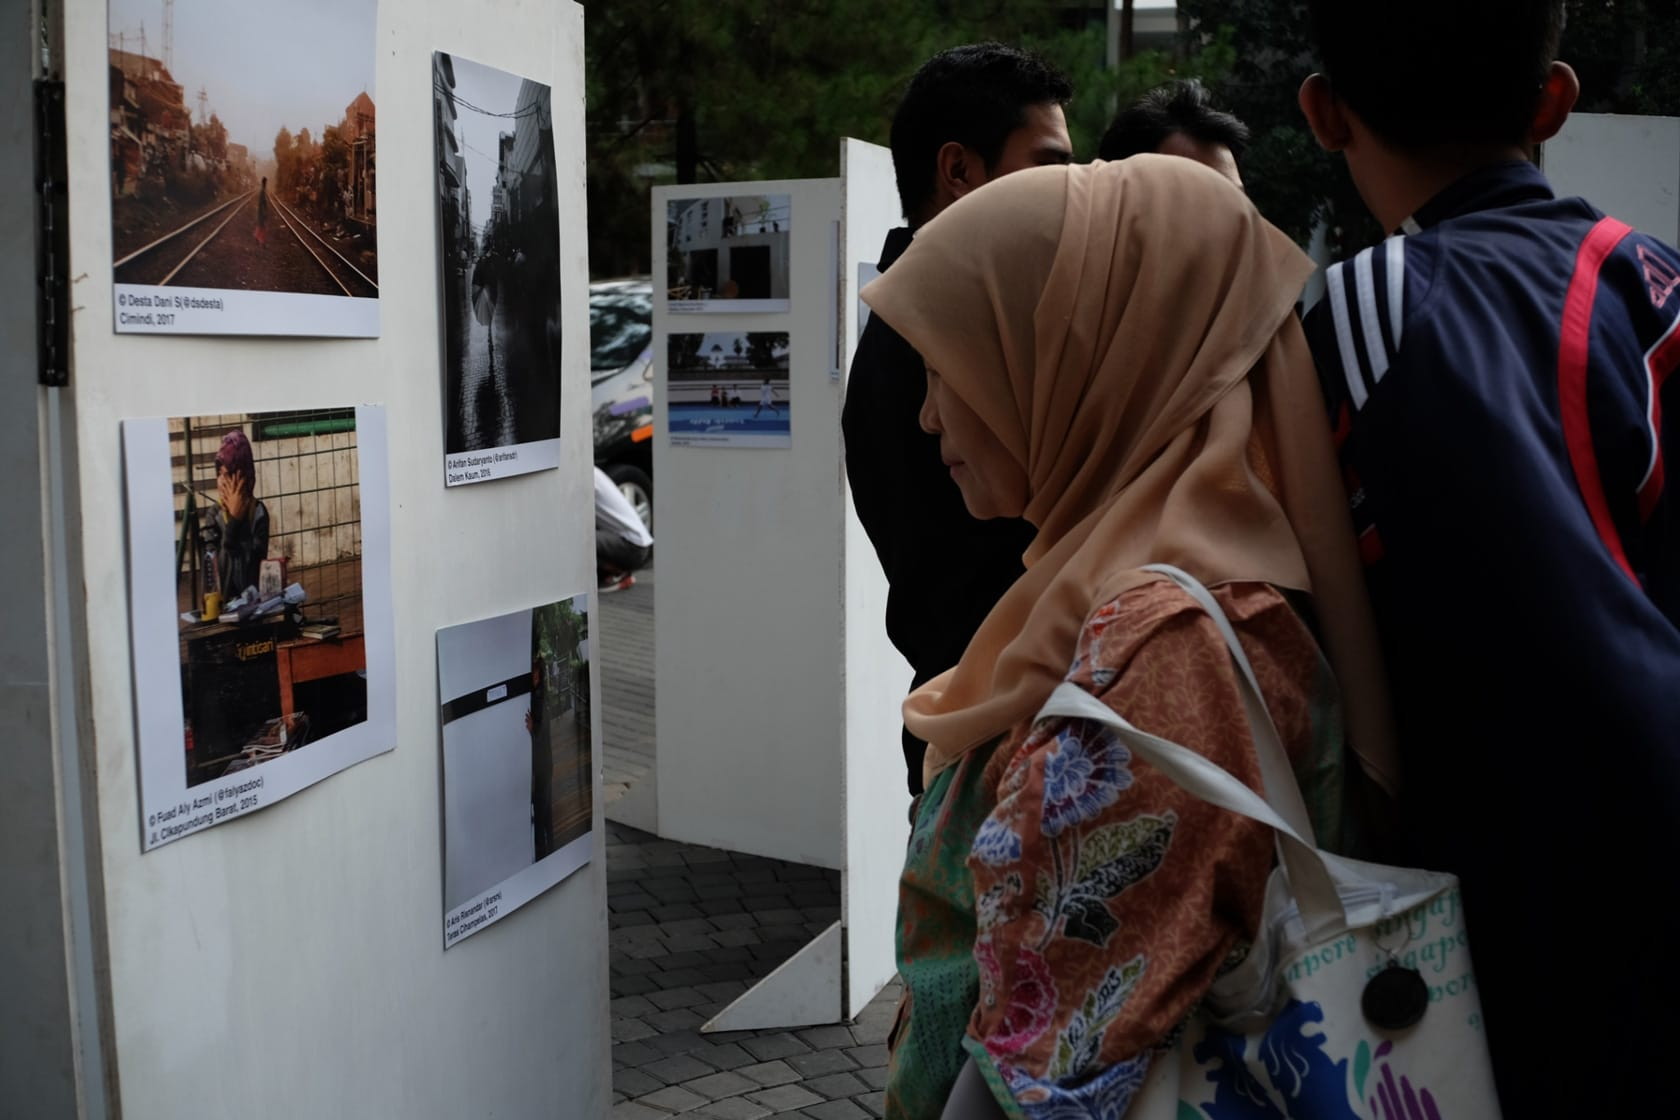 Indo Street Project Bandung Public Space 4